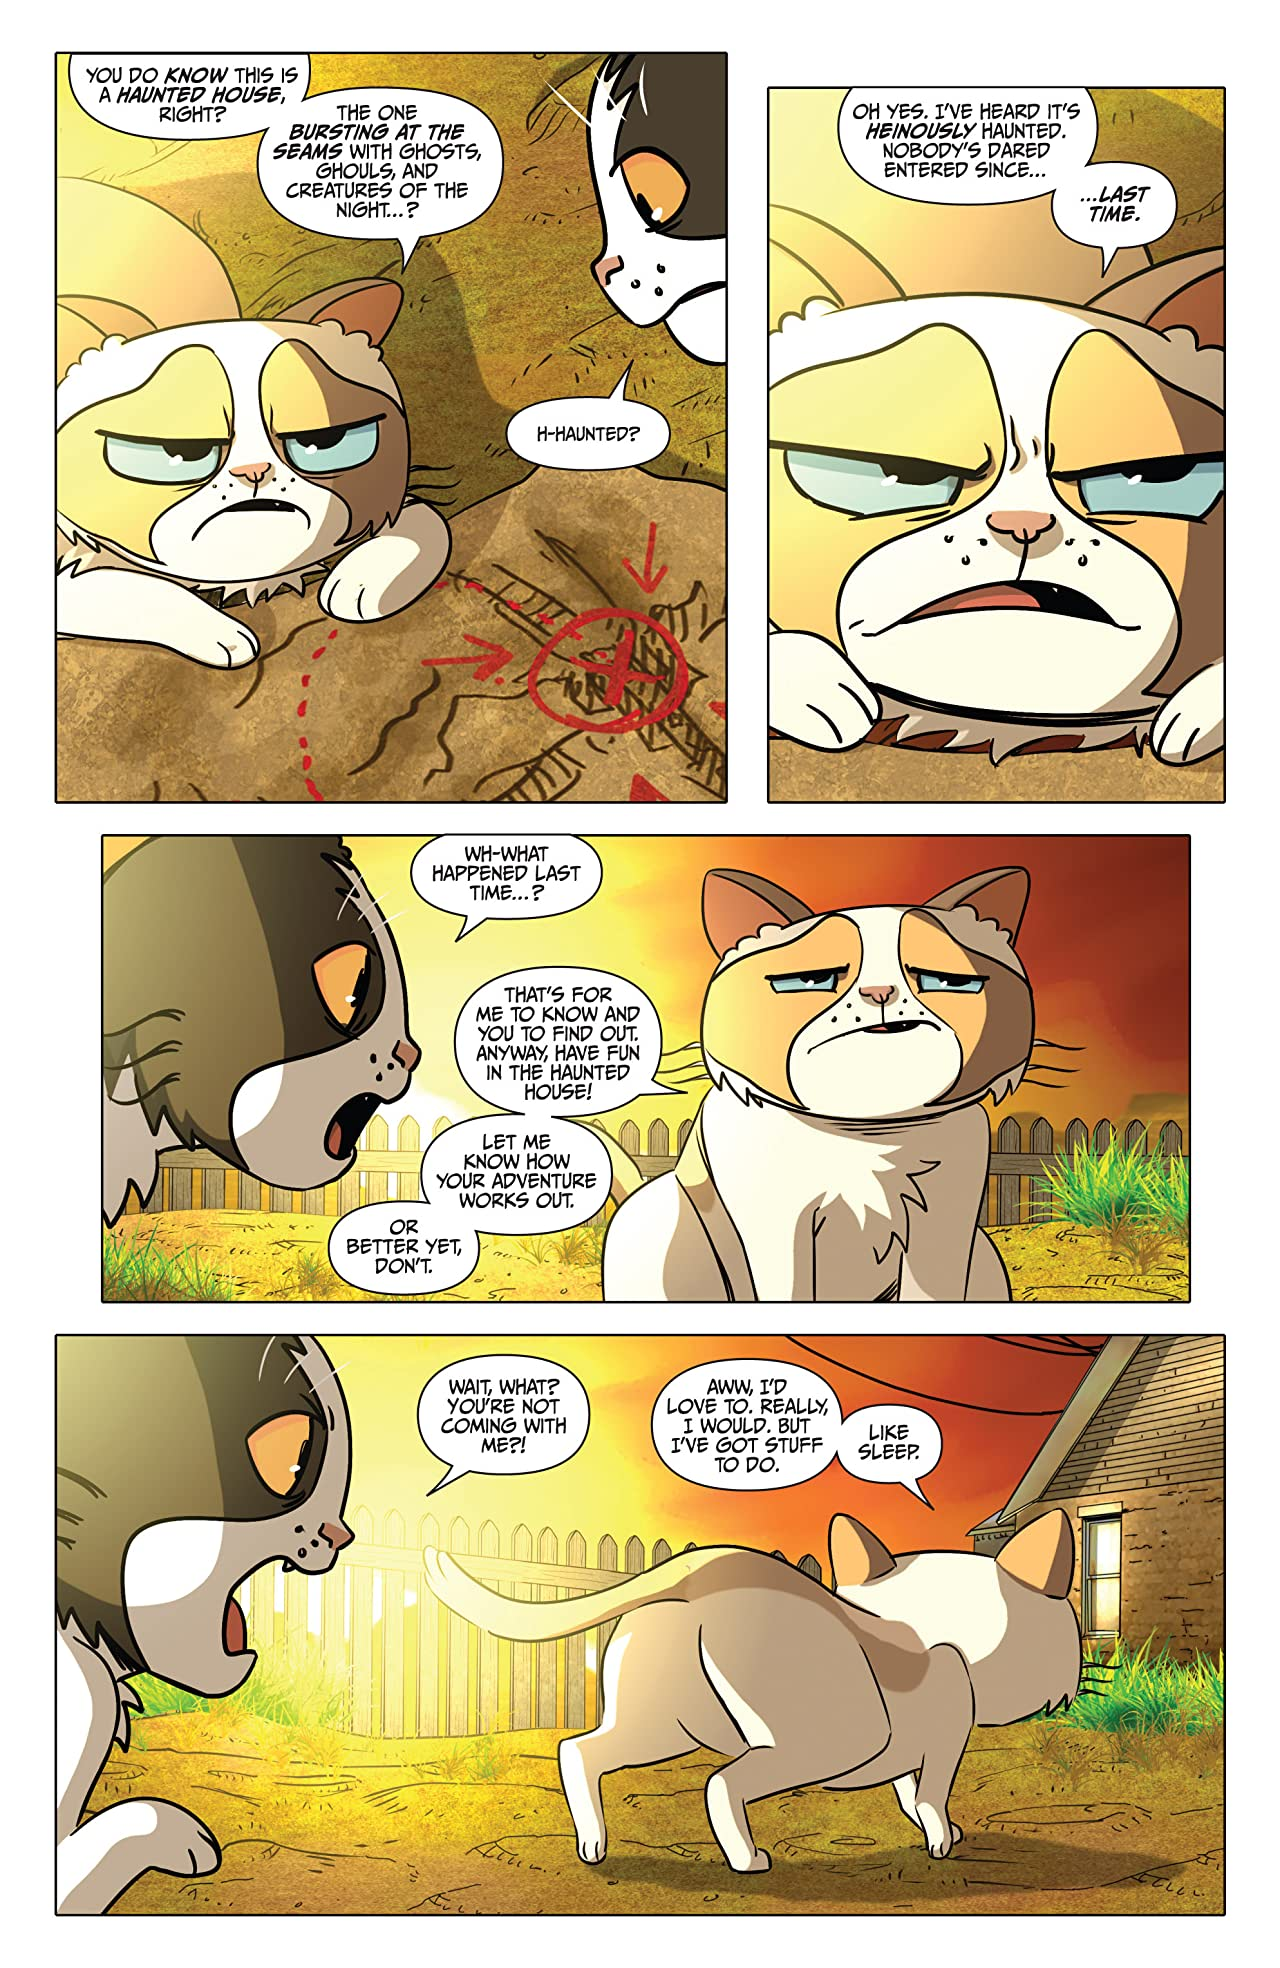 Grumpy Cat and Pokey Vol. 1 #1 (of 3): Digital Exclusive Edition